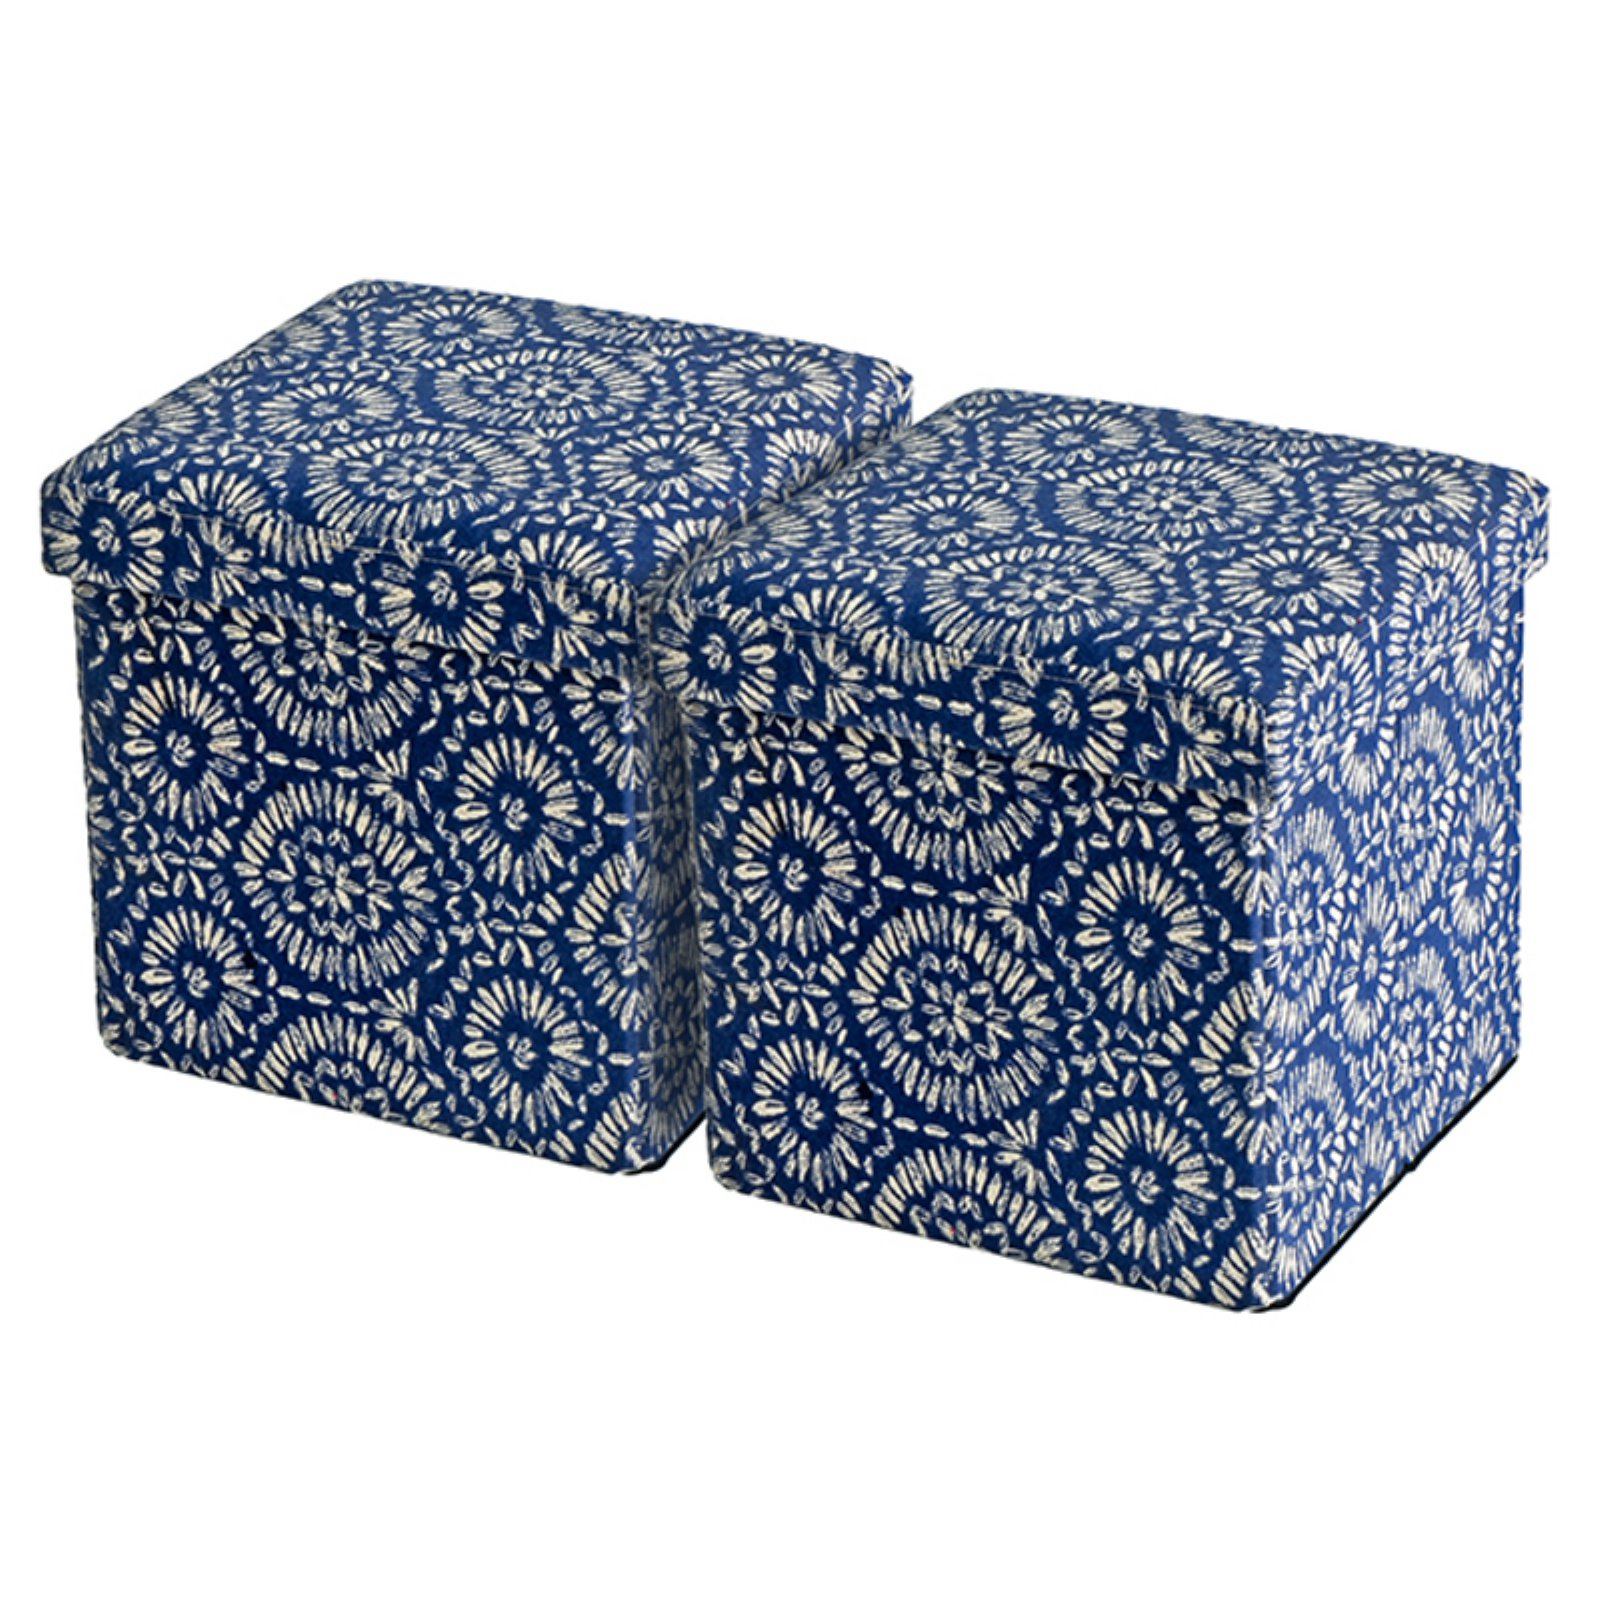 Creative Living Folding Storage Ottoman - Blue